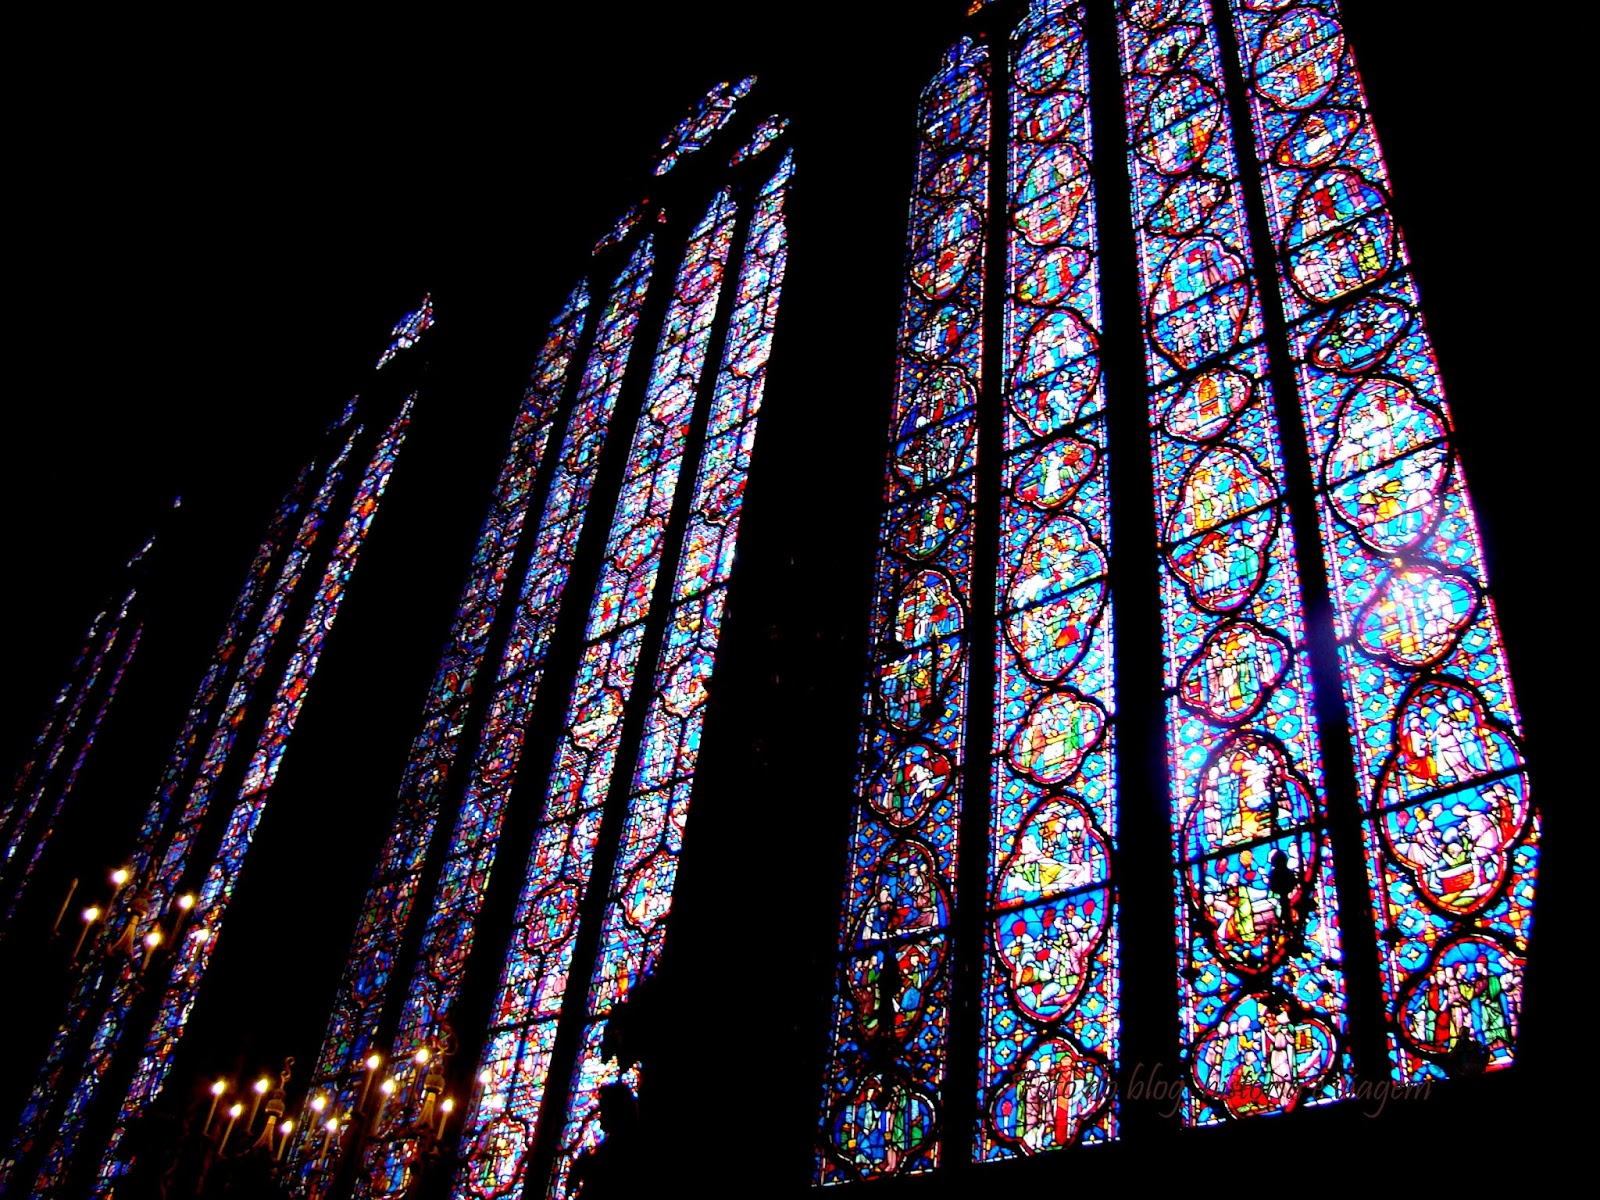 Saint Chapelle - Paris